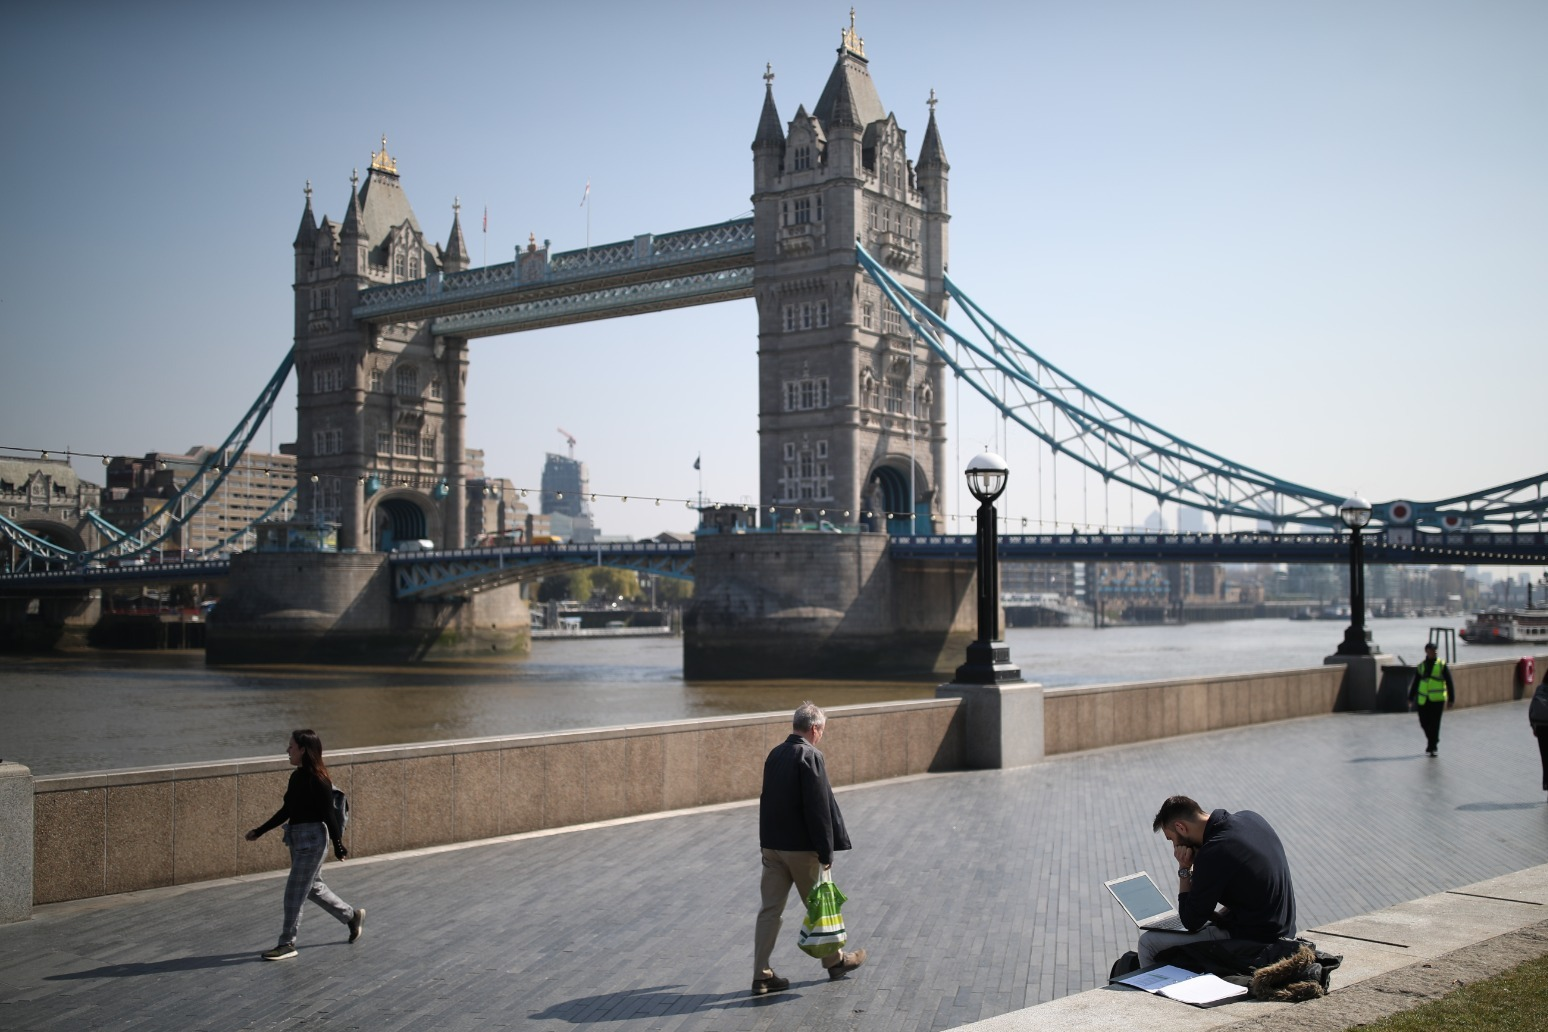 Schoolboy missing after falling from Tower Bridge into River Thames thumbnail